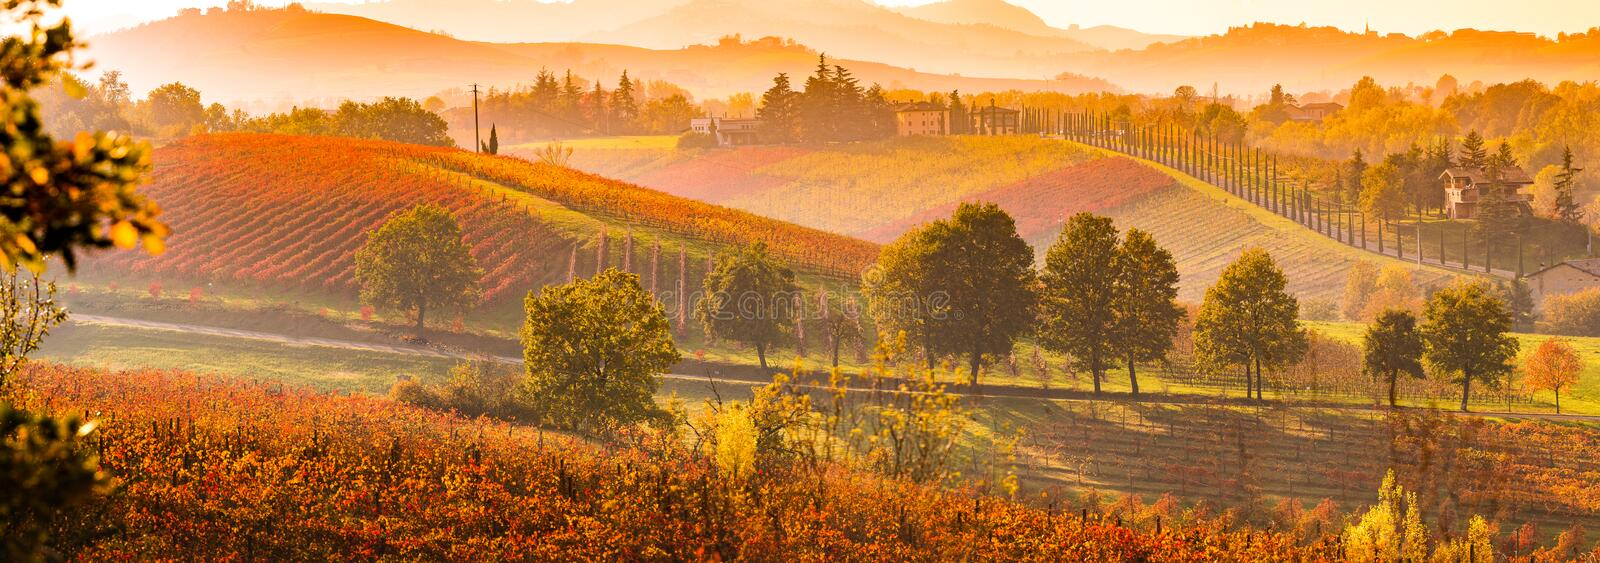 Autumn in Italy. Castelvetro, Modena, Emilia Romagna, Italy. Sunset over the vineyards and rolling hills in autumn royalty free stock images